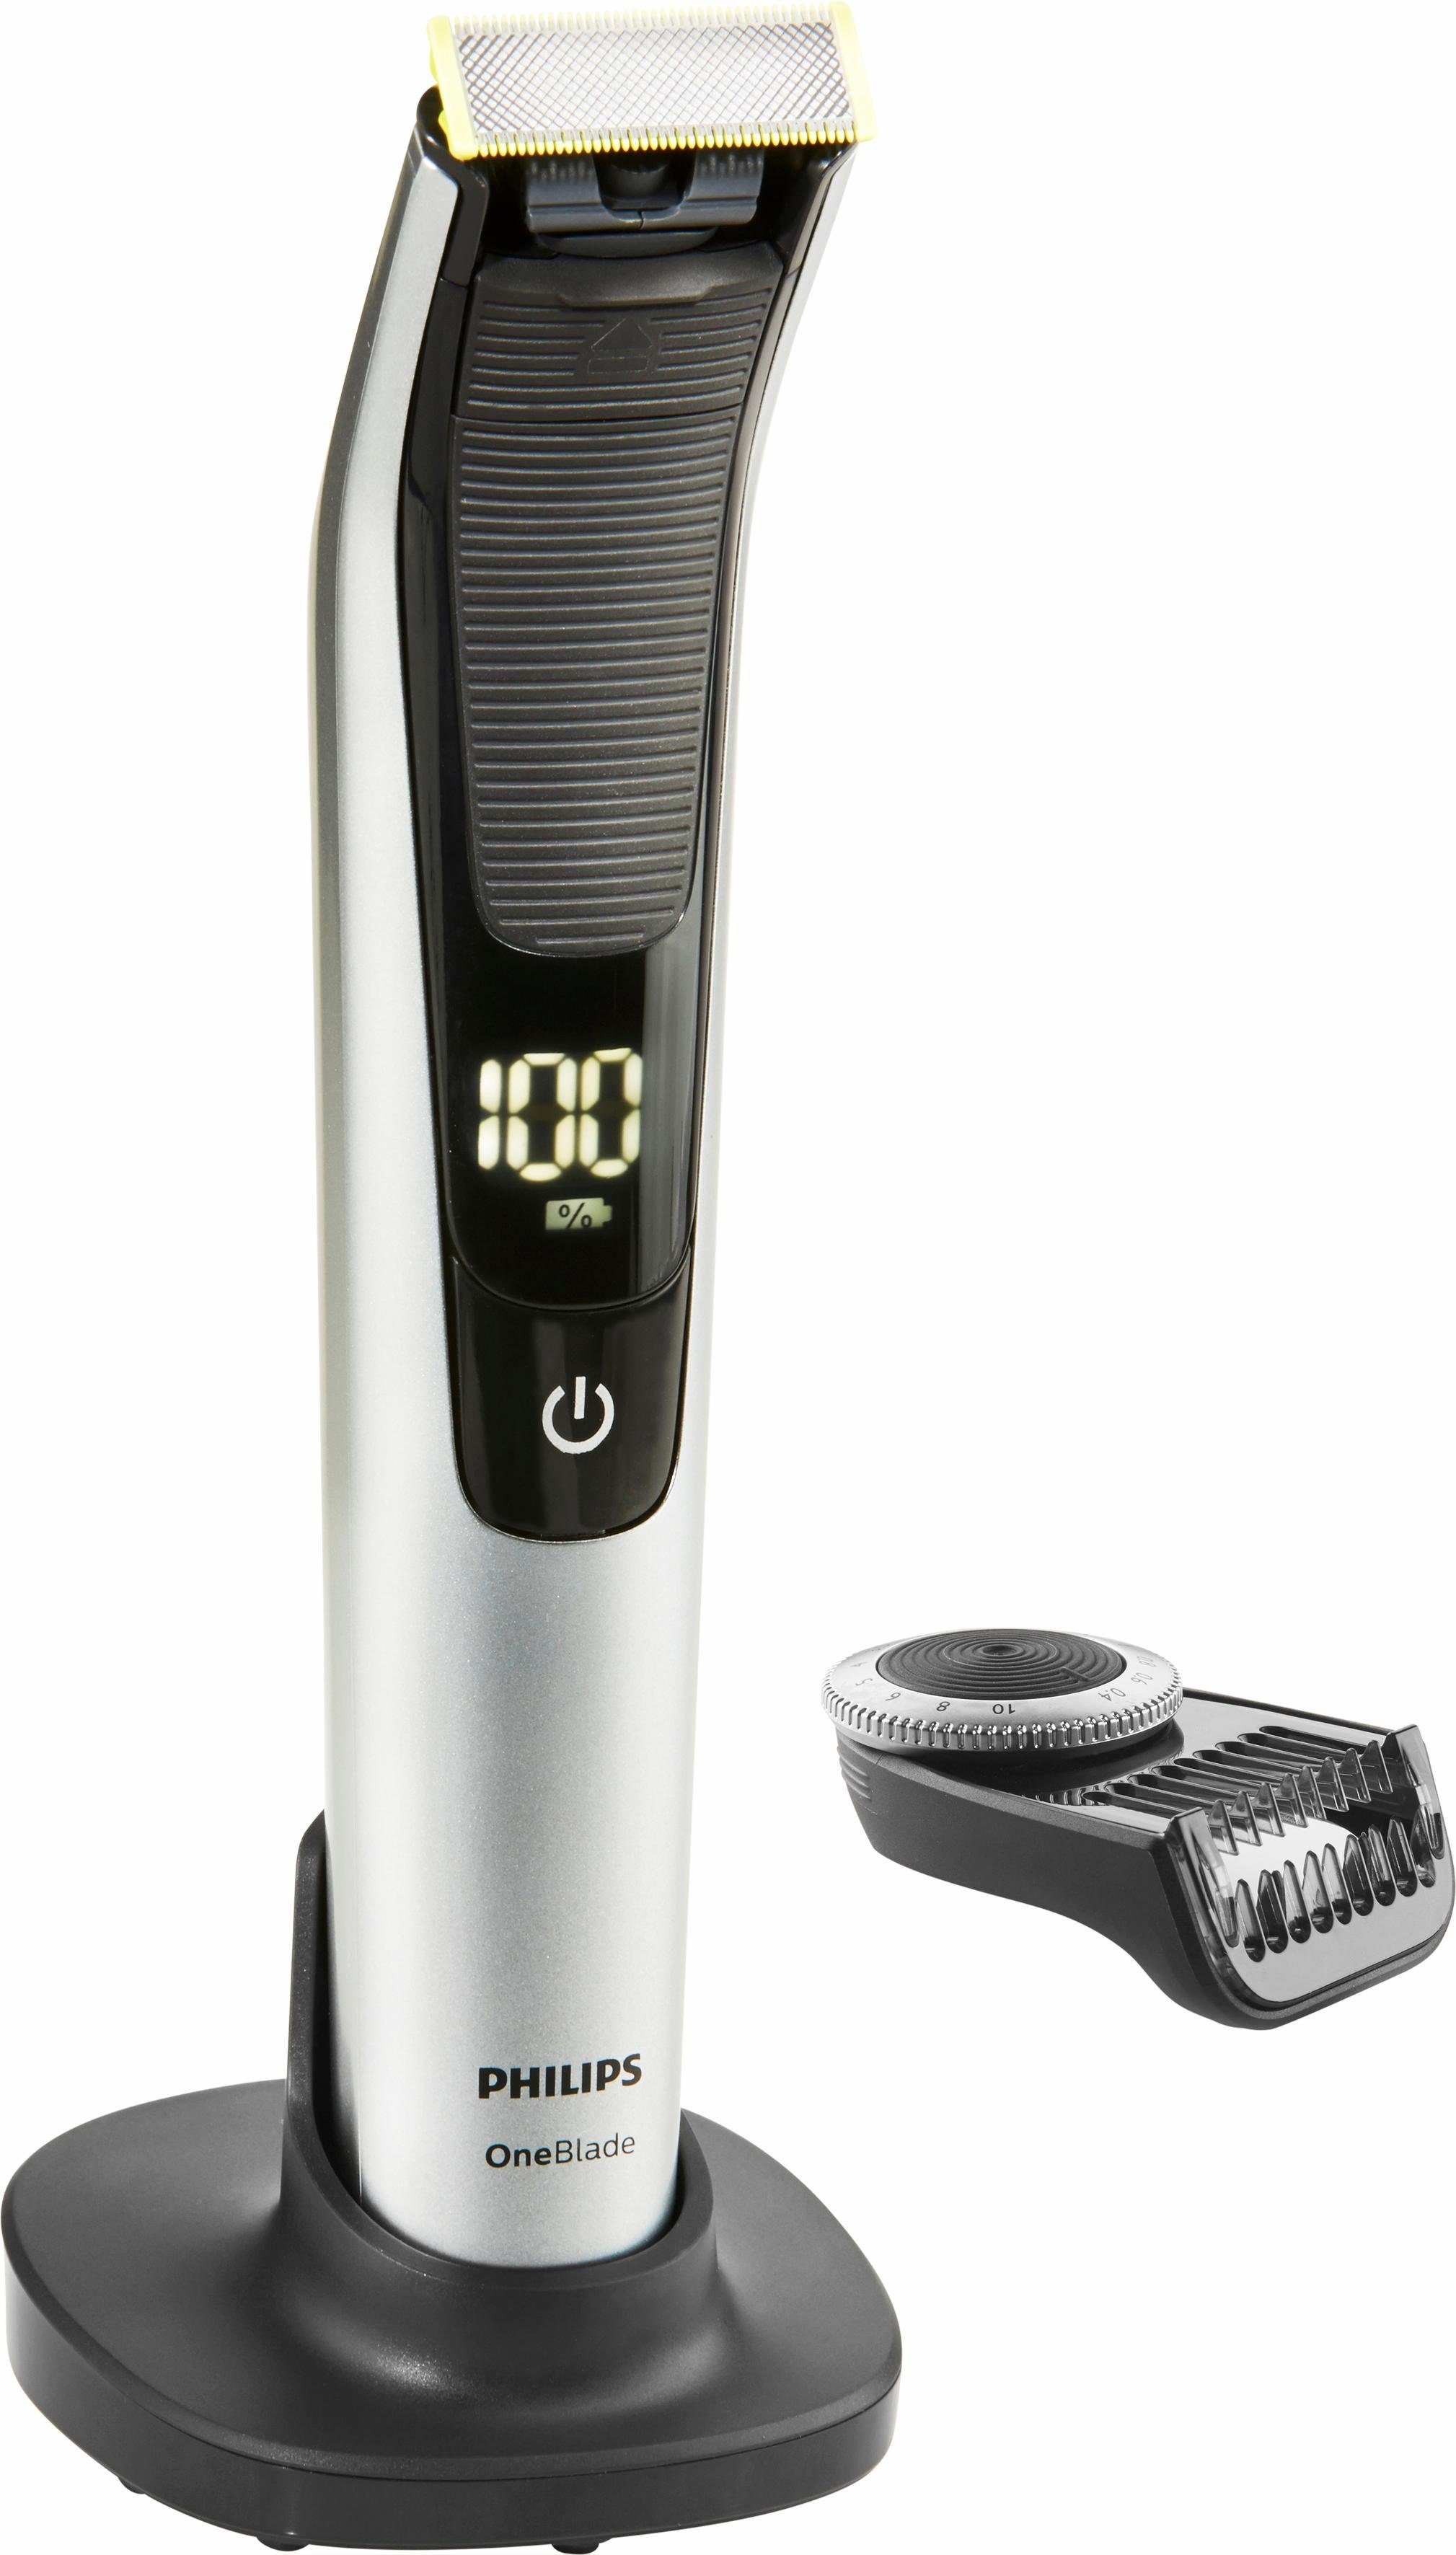 Philips Herrenrasierer OneBlade Pro QP6520/30, Akku, Wet&Dry, LED Display, Präzisions-Trimmer